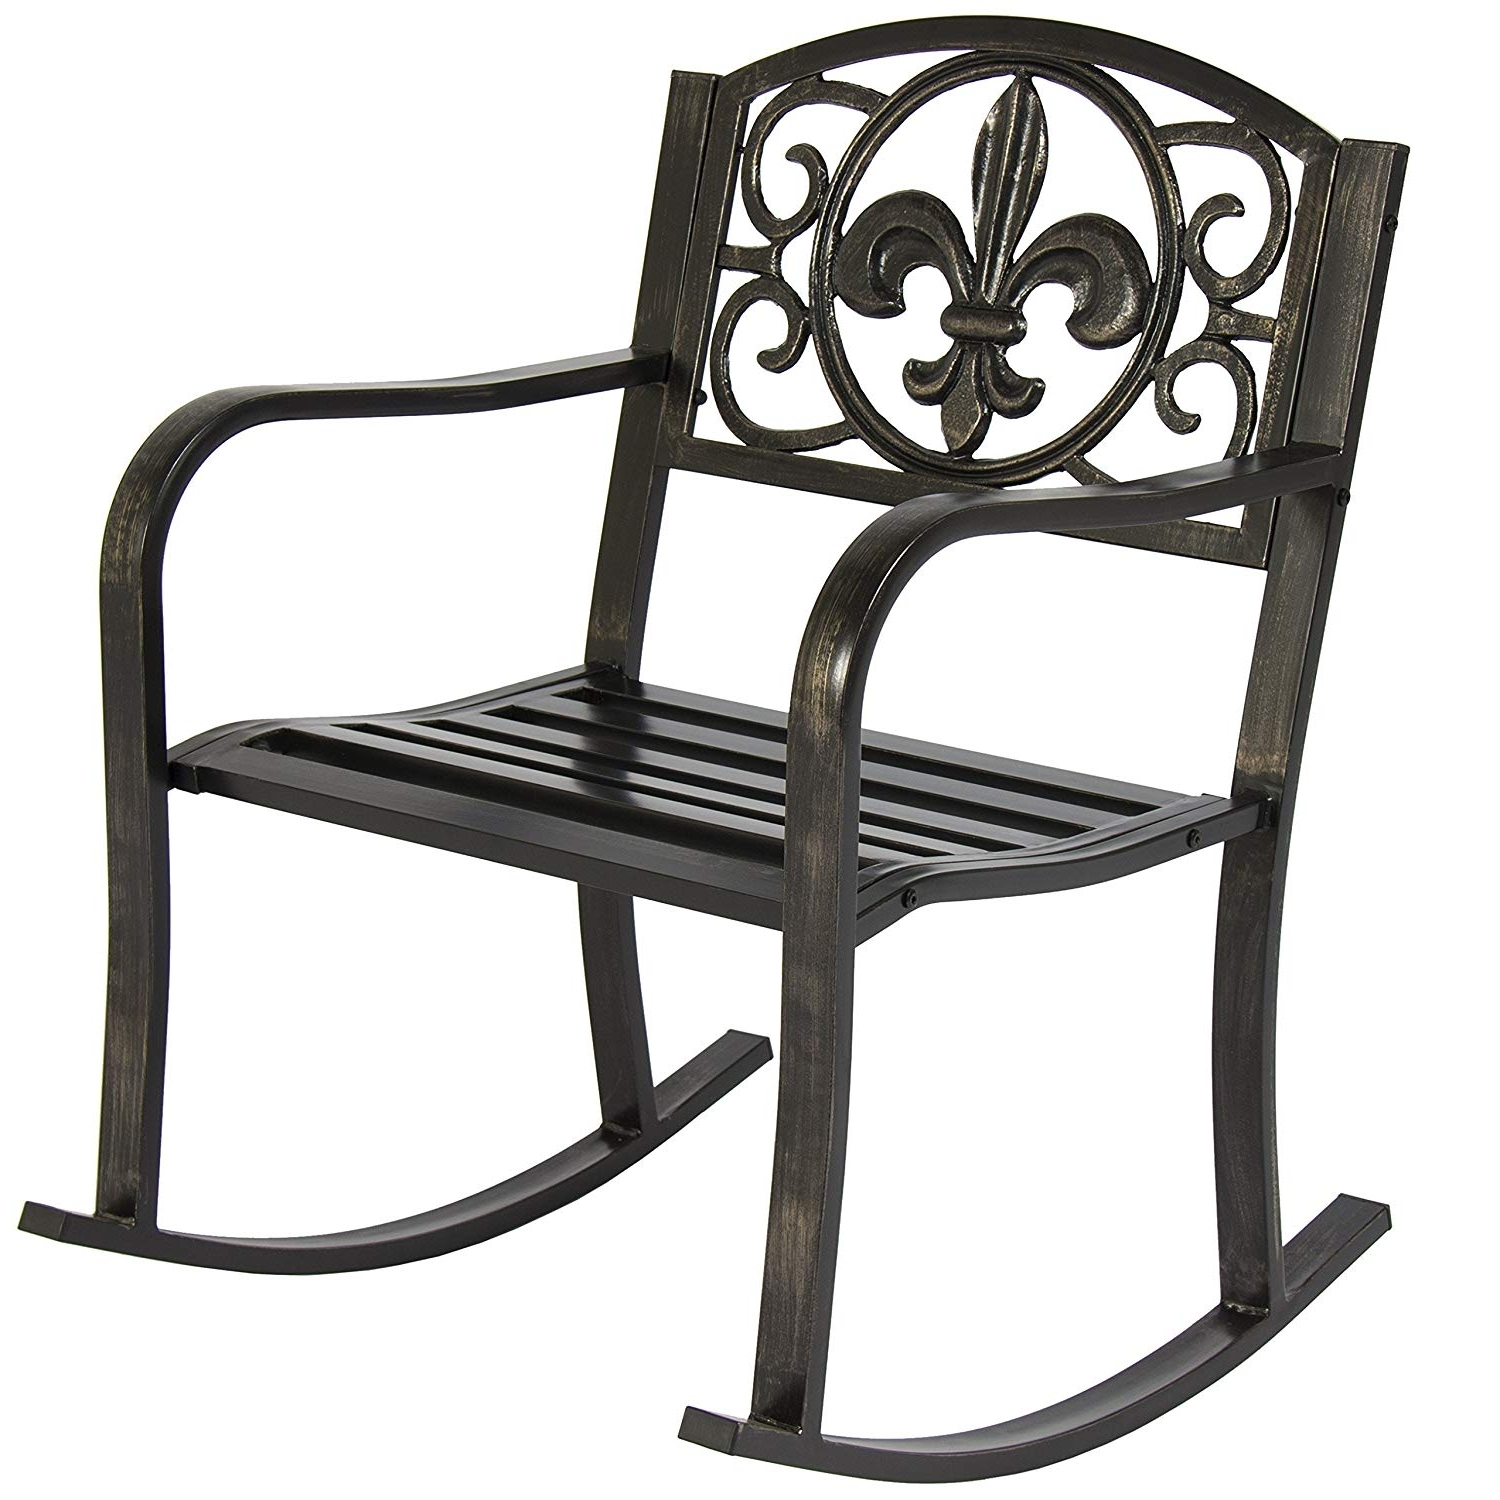 Most Current Patio Rocking Chairs Pertaining To Amazon : Best Choice Products Metal Rocking Chair Seat For Patio (View 3 of 15)